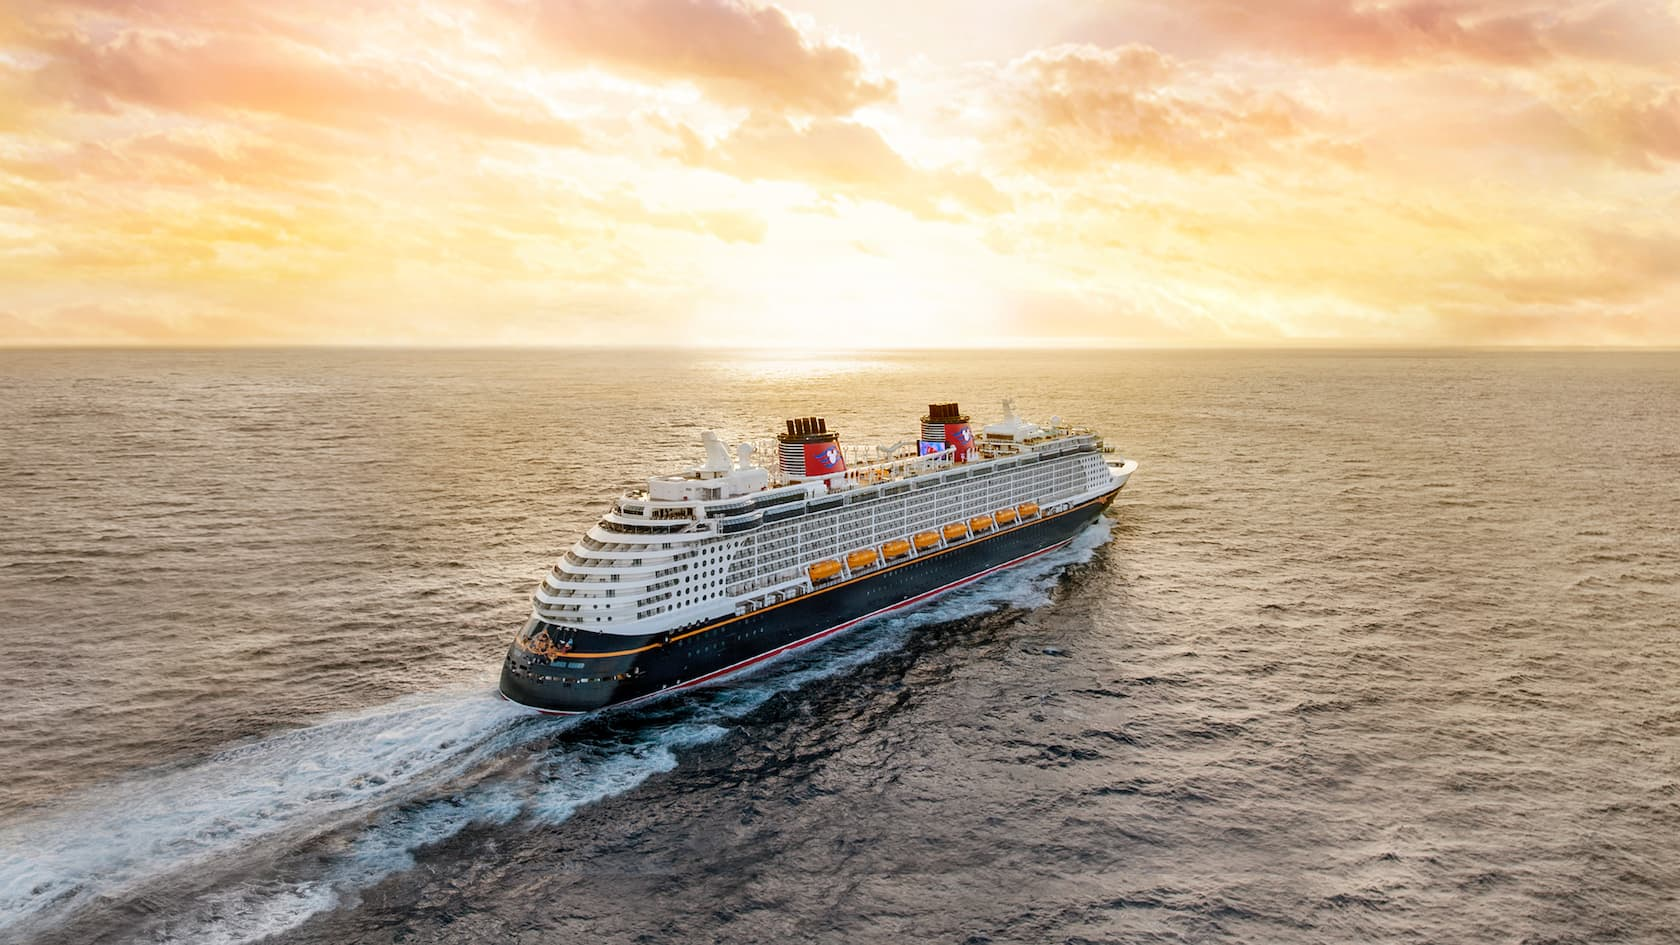 The Disney Dream crusie ship glides across the sea as the sun sets